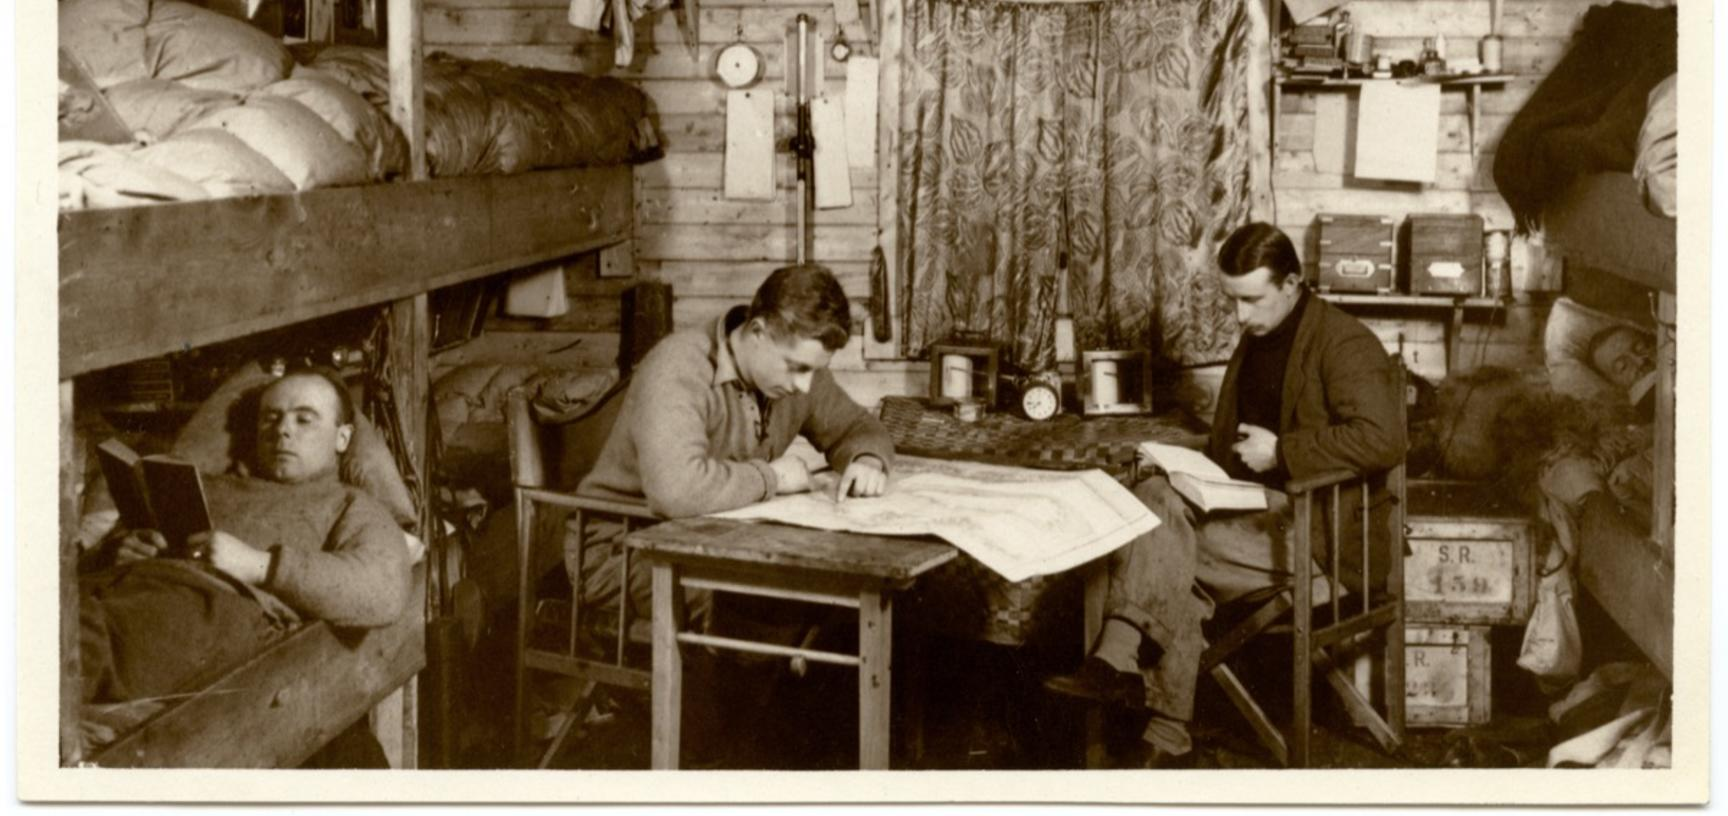 Members of the expedition posed and looking studious in their base hut.